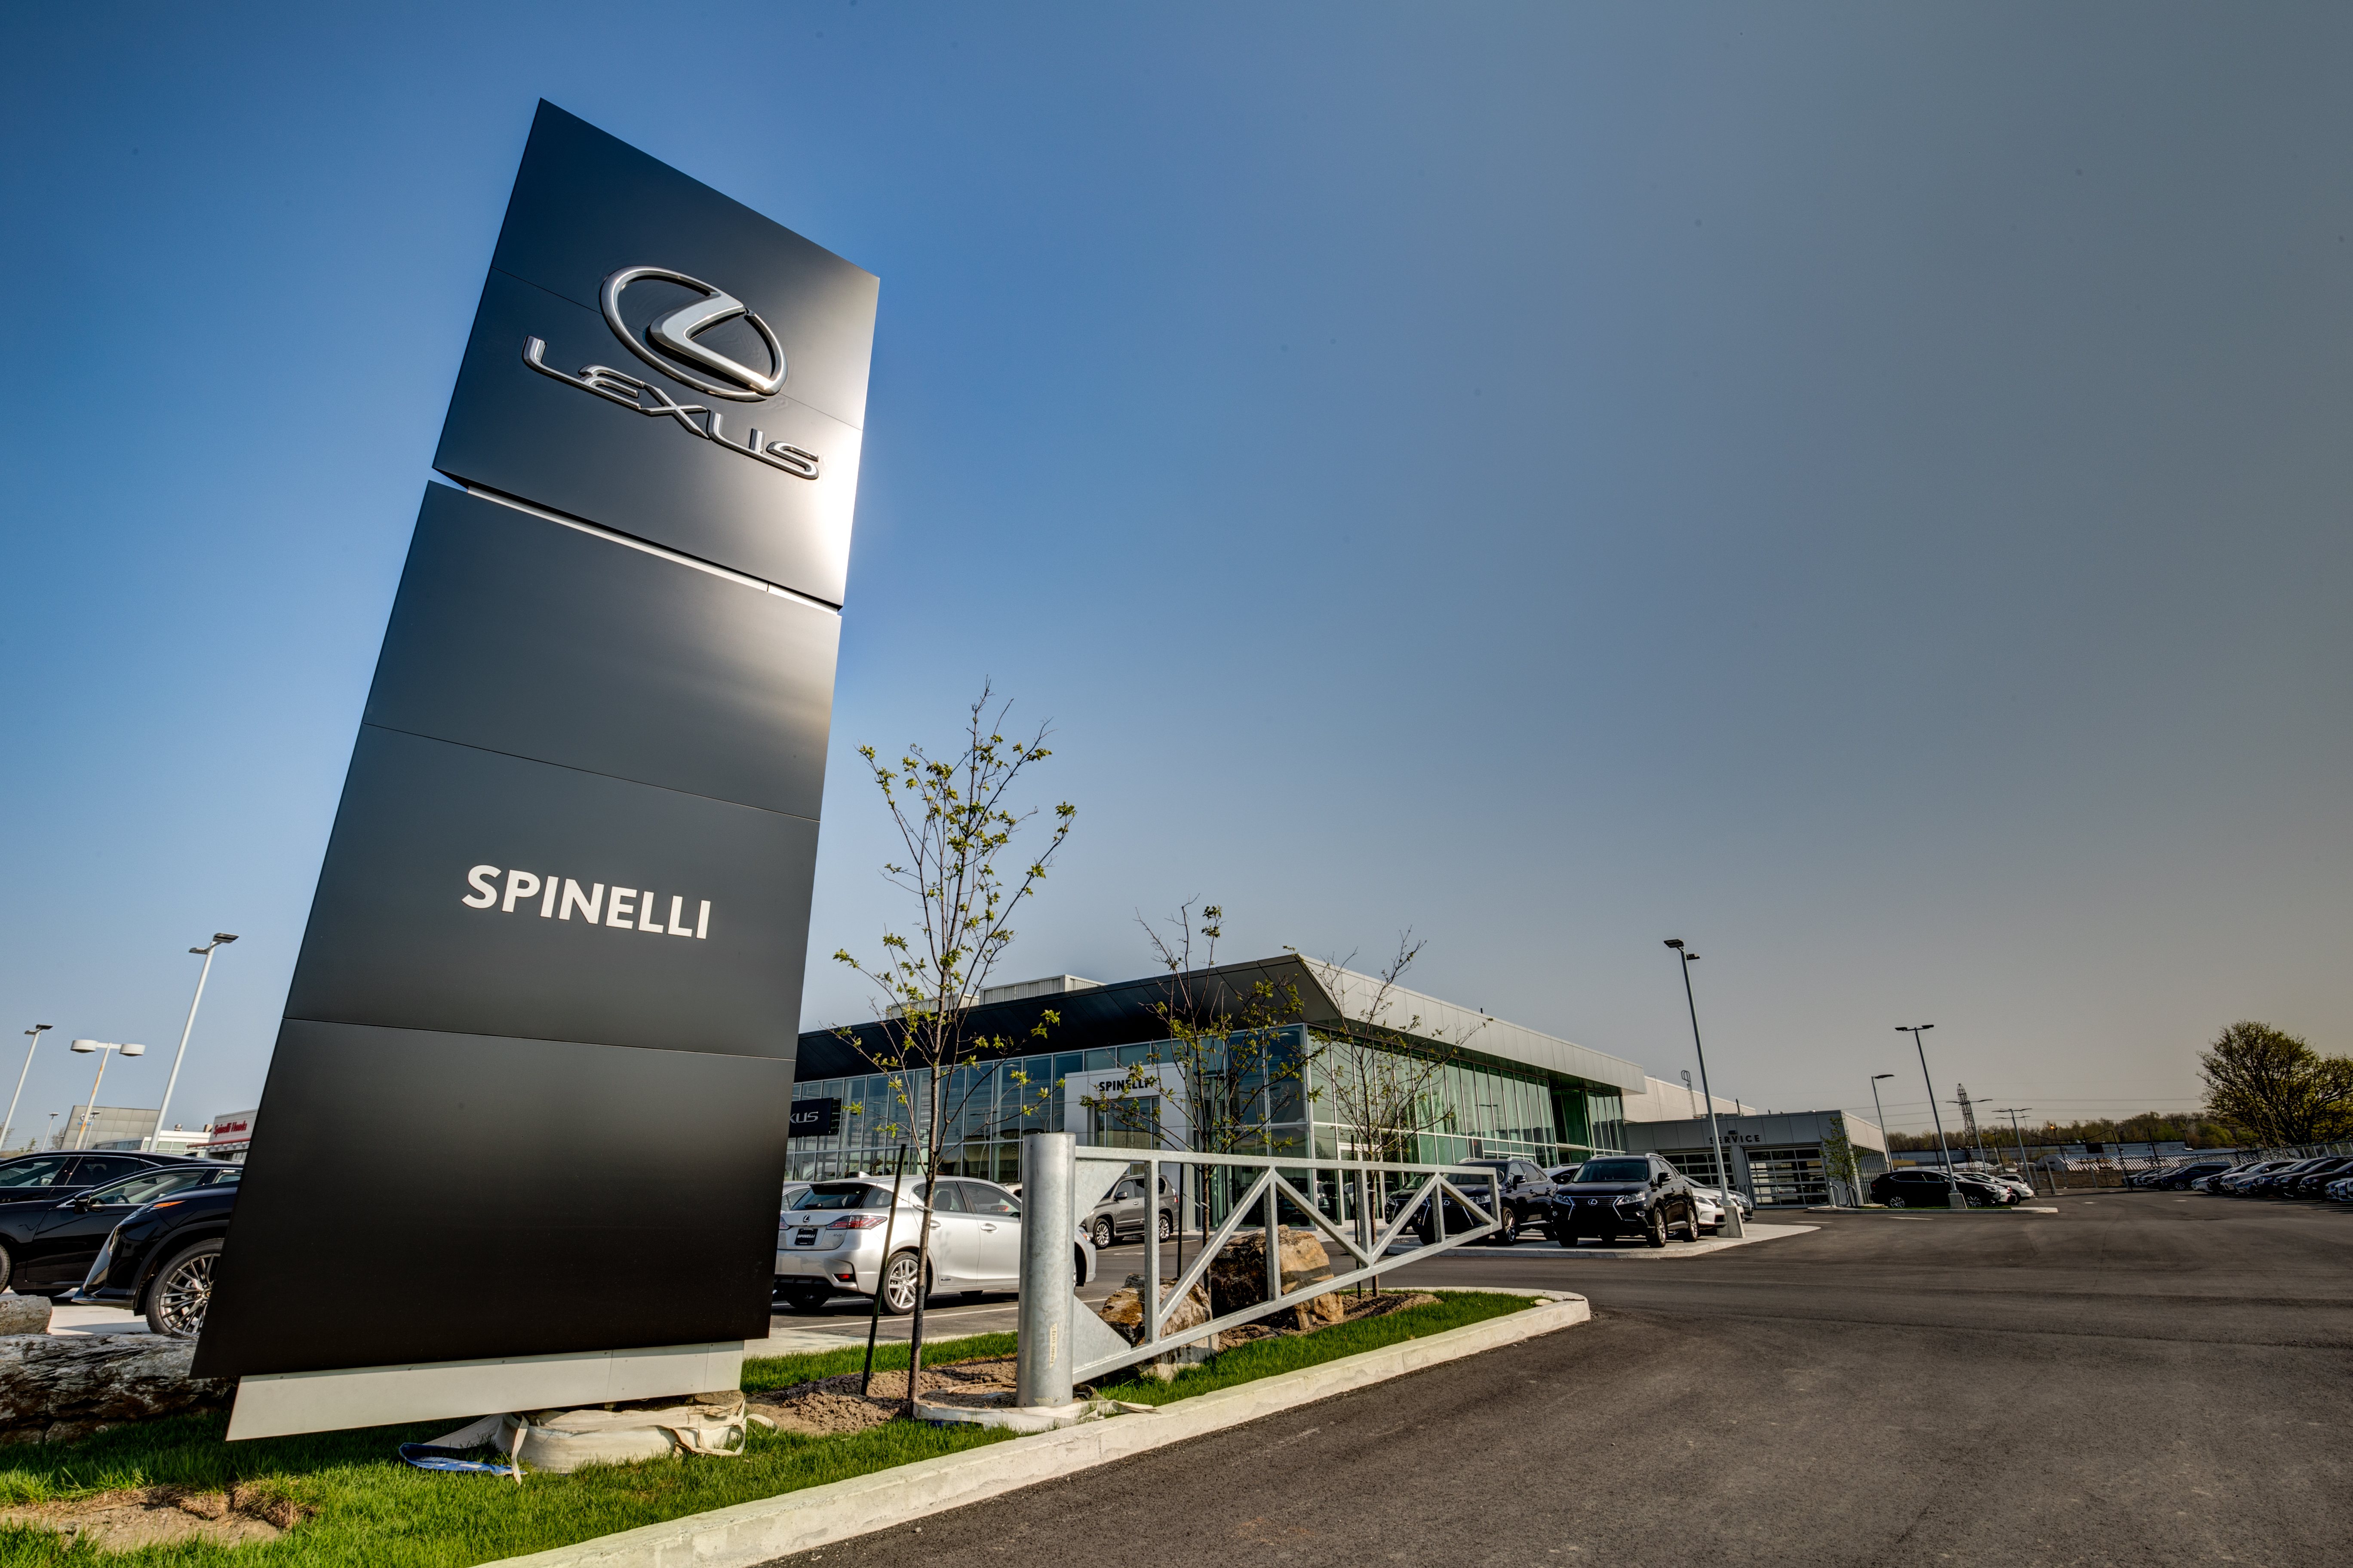 Spinelli Lexus Lachine Officially Opens $10 Million State-of-the-art Dealership